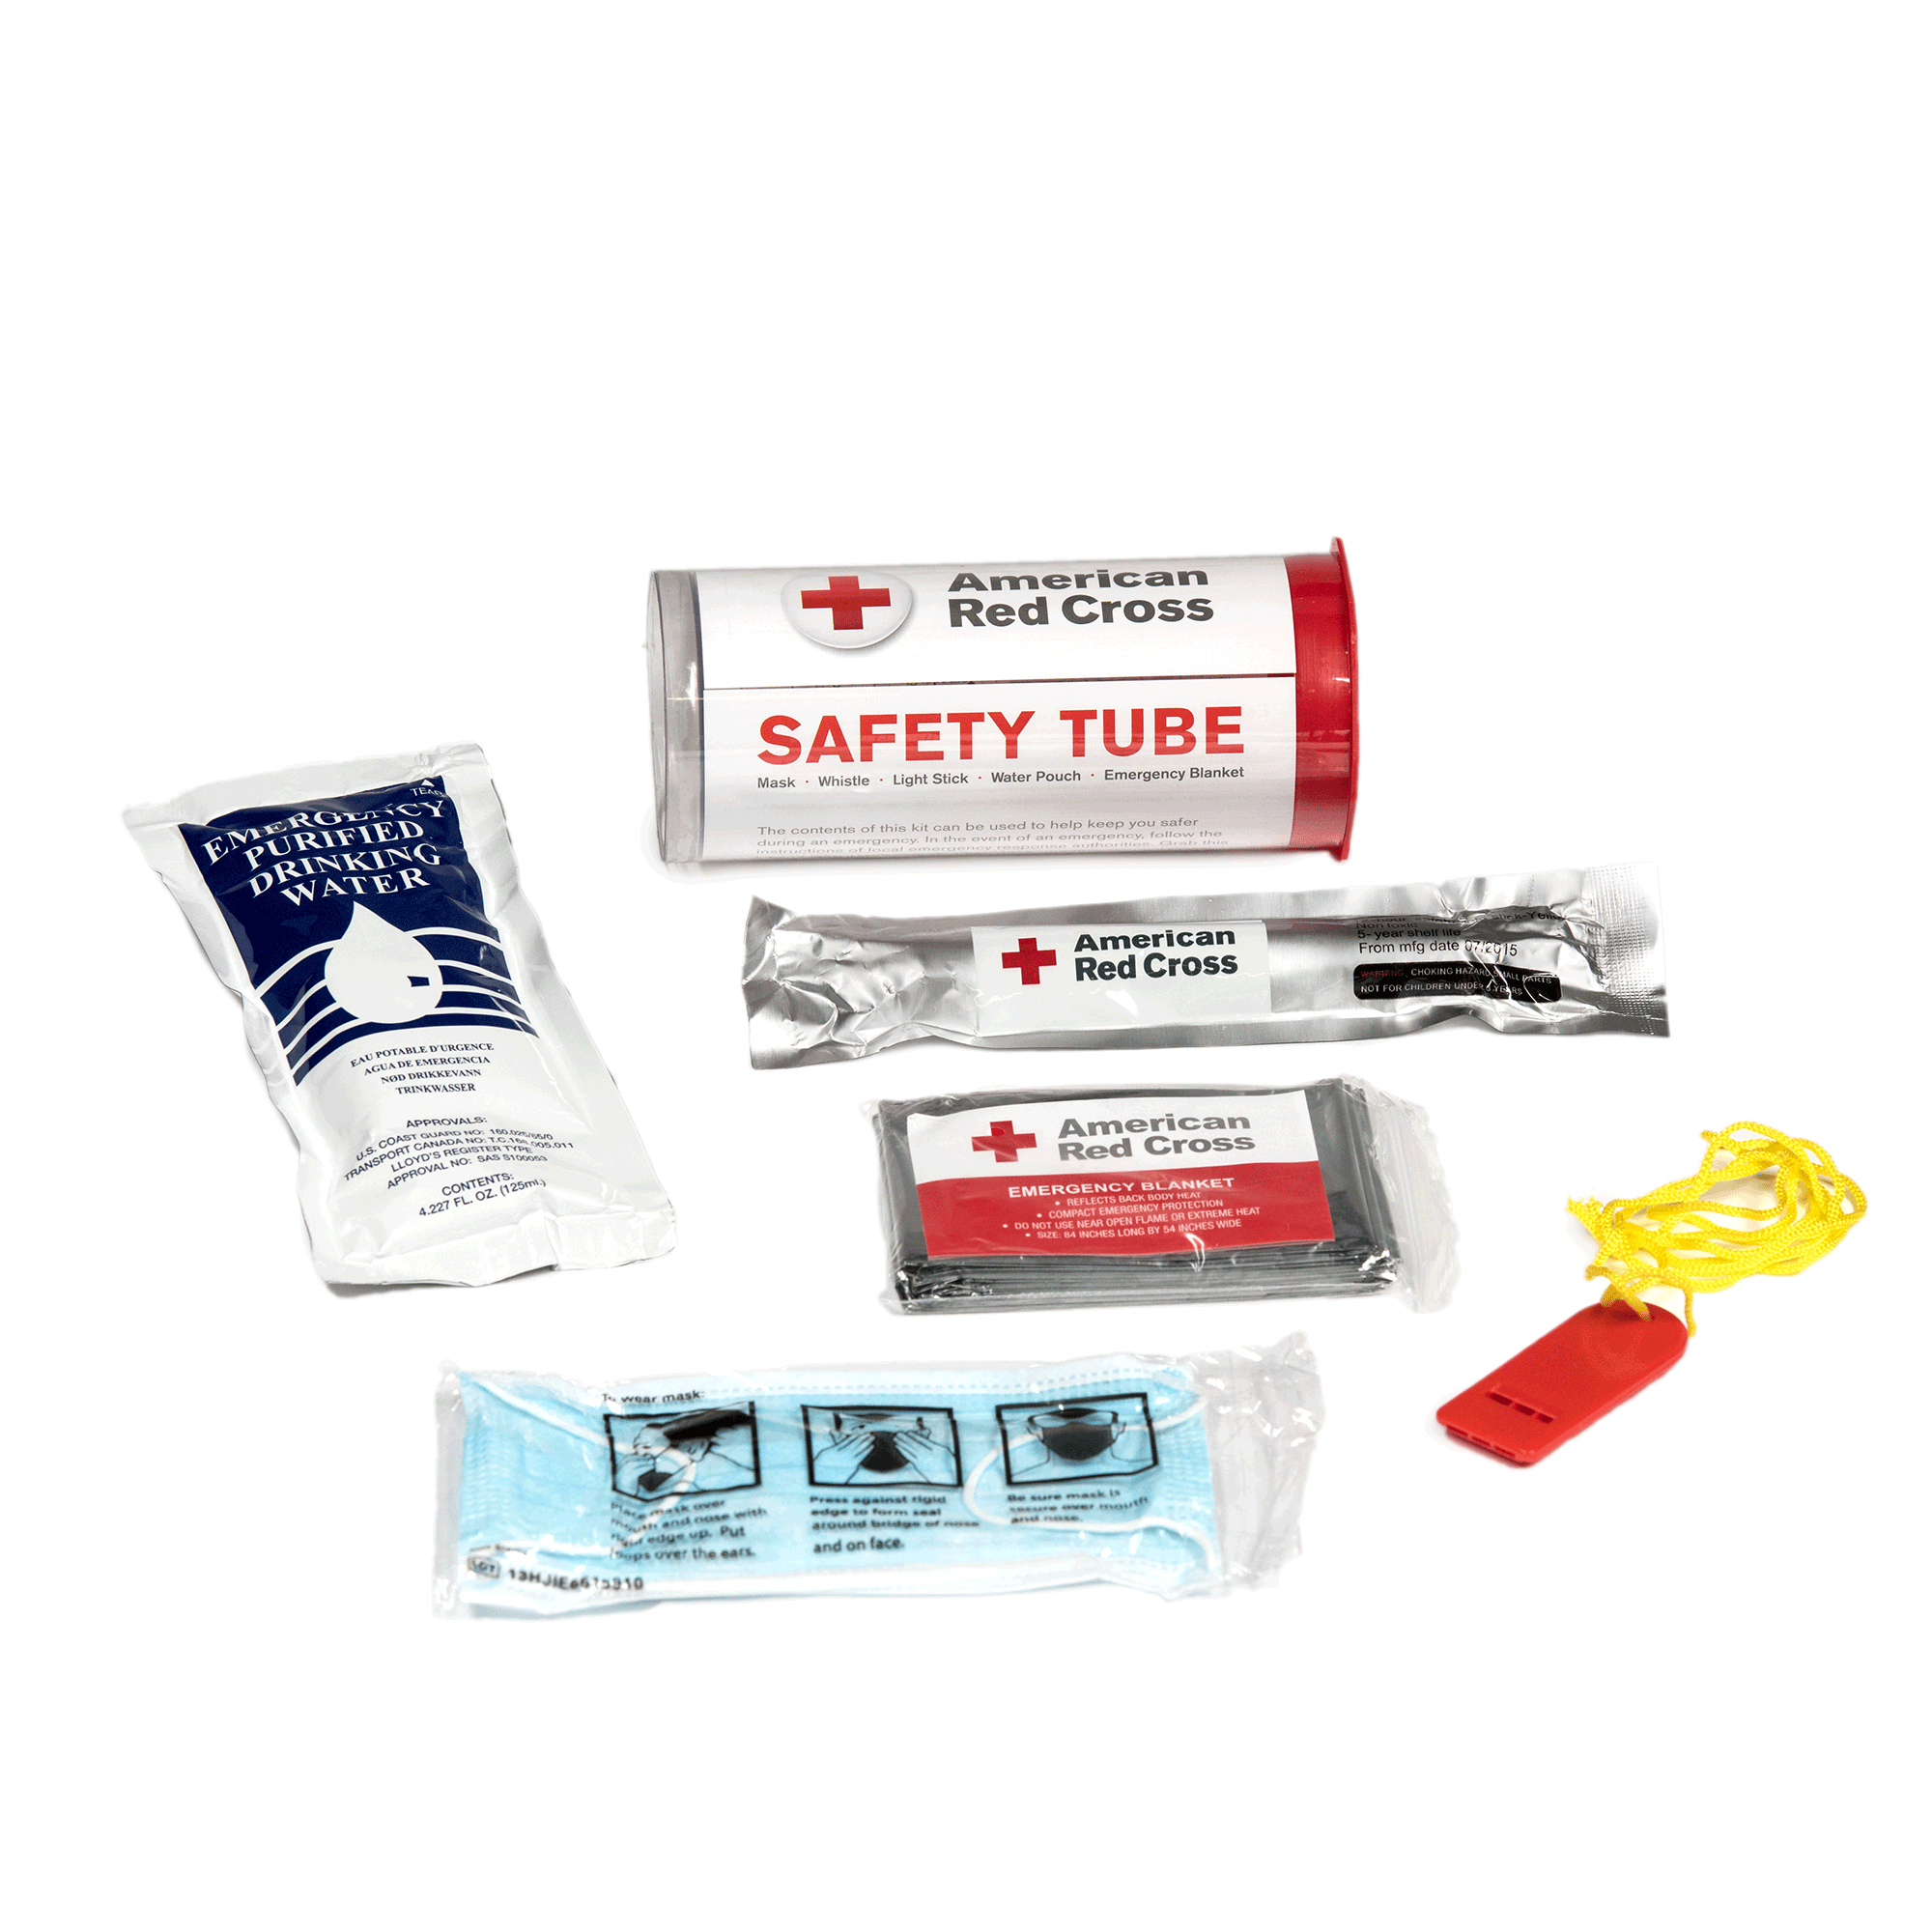 Home & Garden Clothing & Protective Gear Well-Educated Railway Emergancy Safety Kits 2 Of